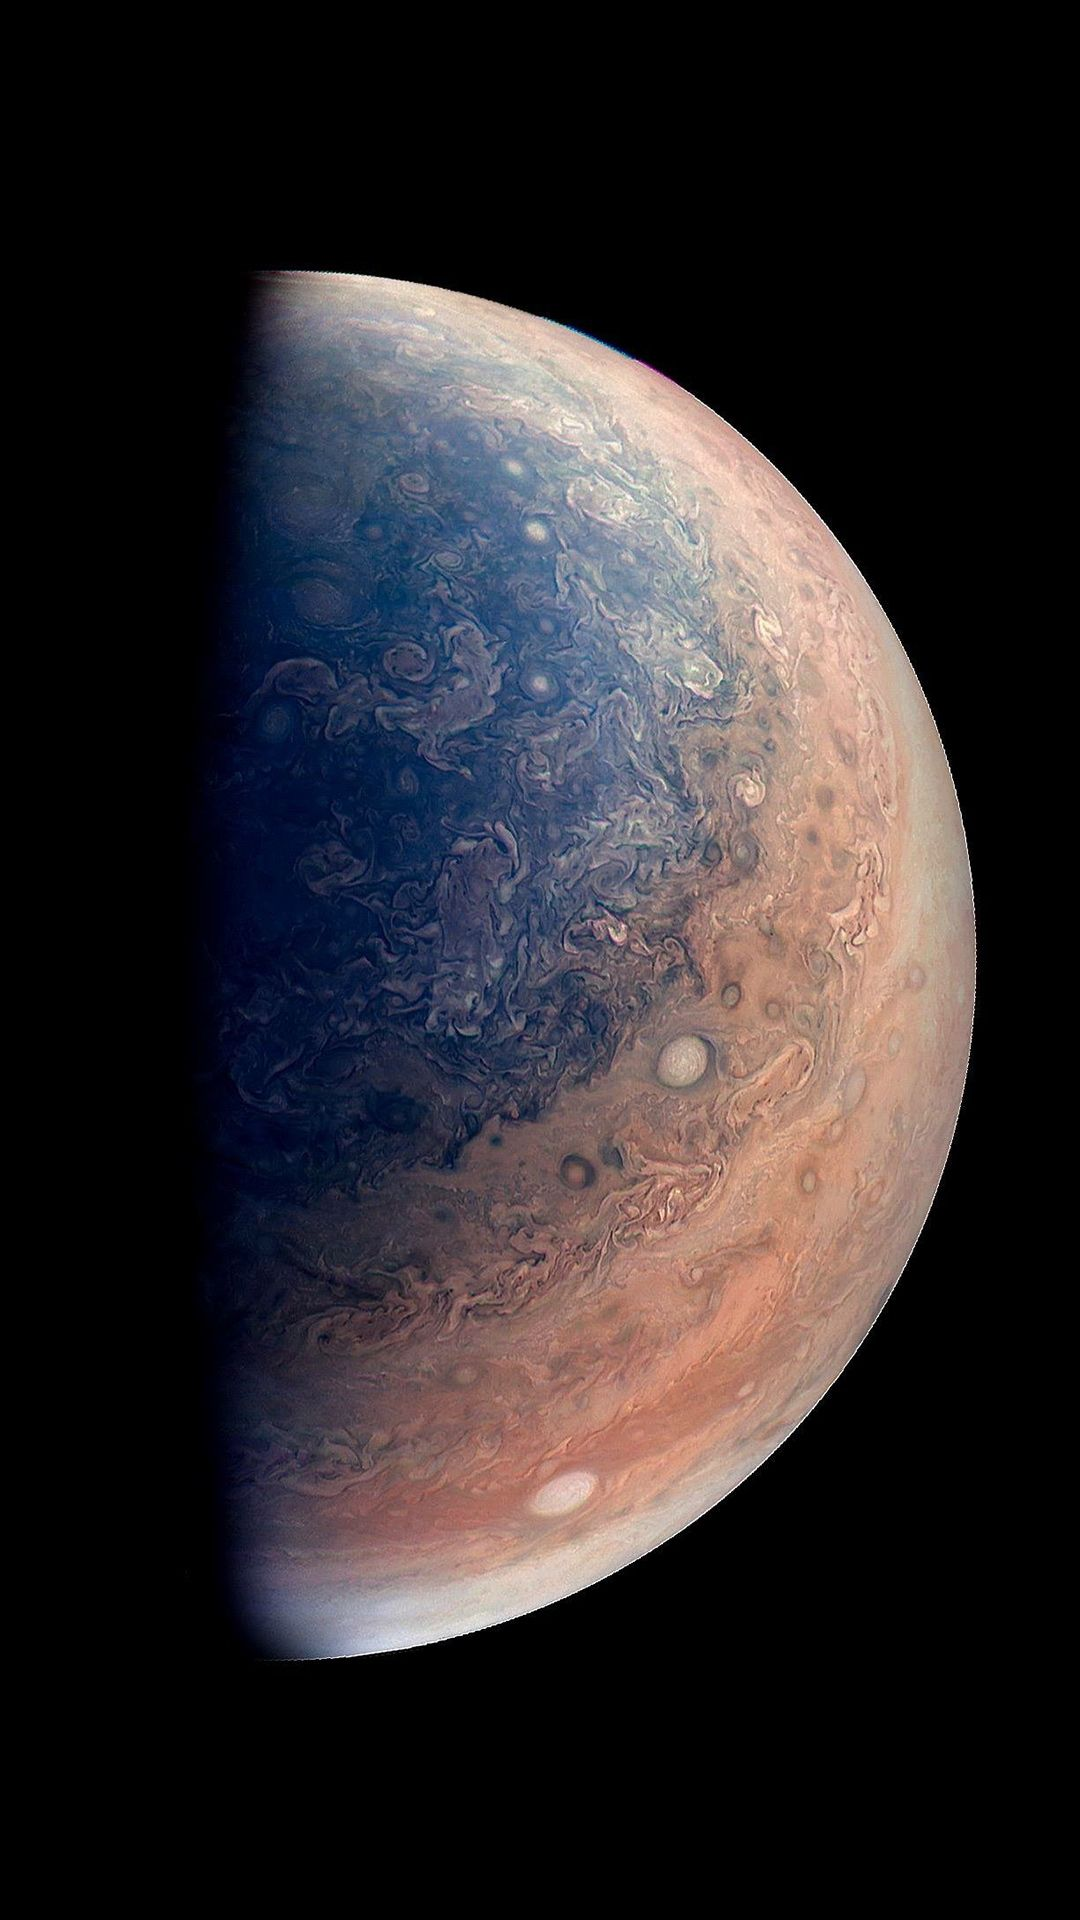 Jupiter Awesome wallpaper in 2019 Jupiter planet Iphone 1080x1920